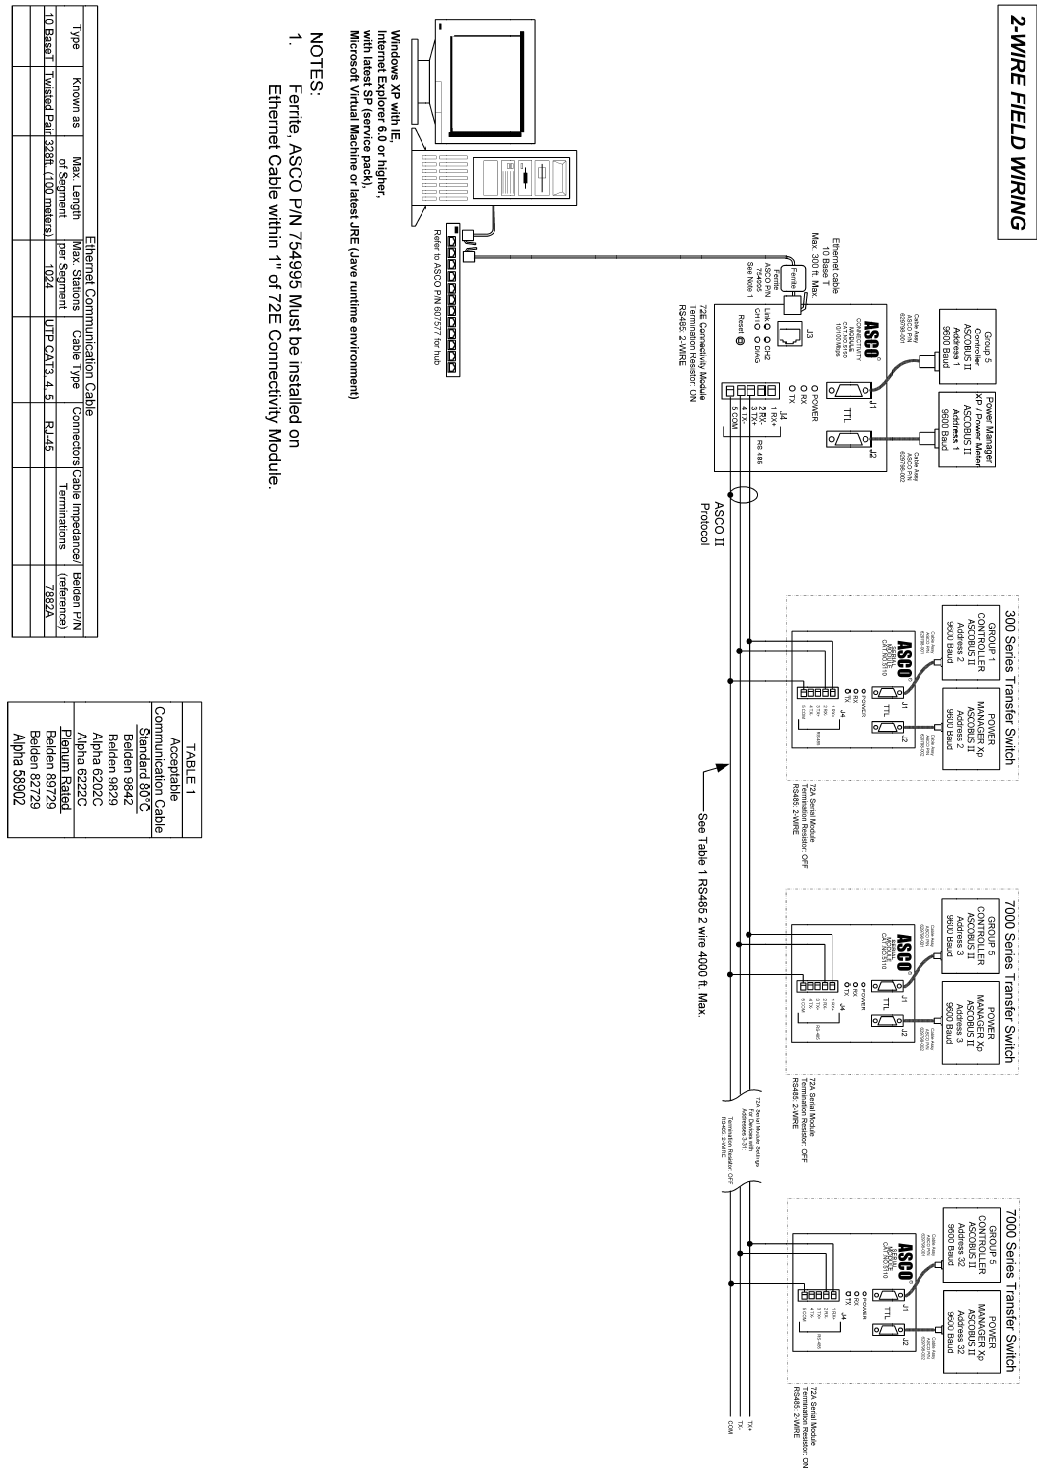 Emerson 5150 Users Manual Installation For Asco Catalog Connectivity Belden Rs 485 Wiring Diagram Module Diagrams Viii